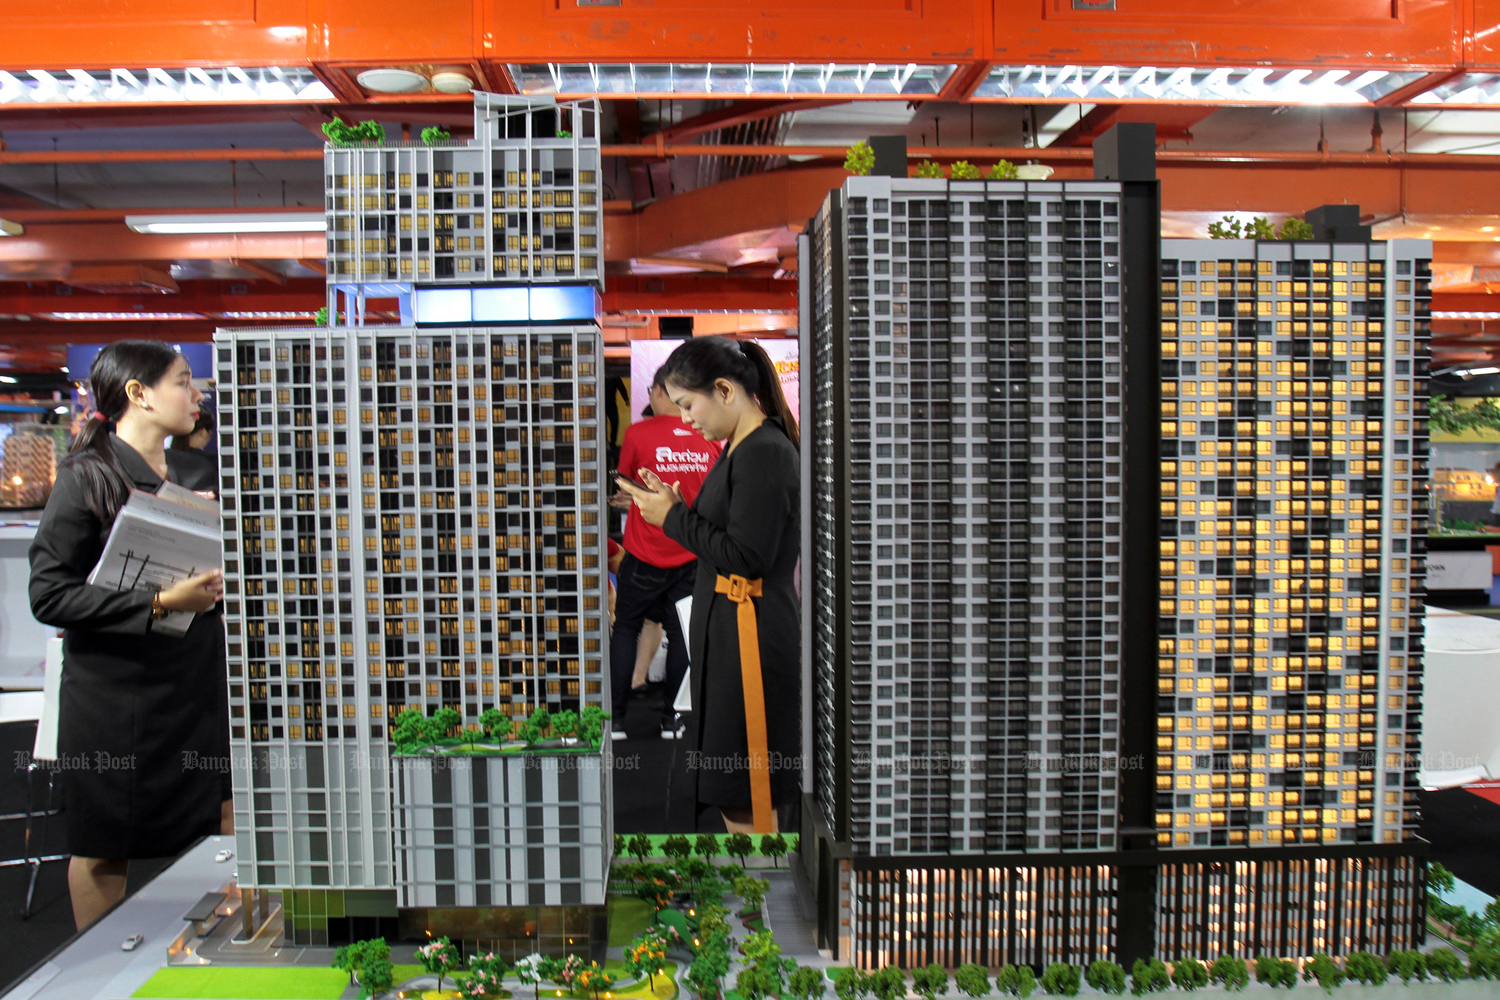 Housing market growth in 2020 will get a 2-percentage-point boost if loan-to-value (LTV) regulations for second mortgages are eased, says Krungthai Compass.